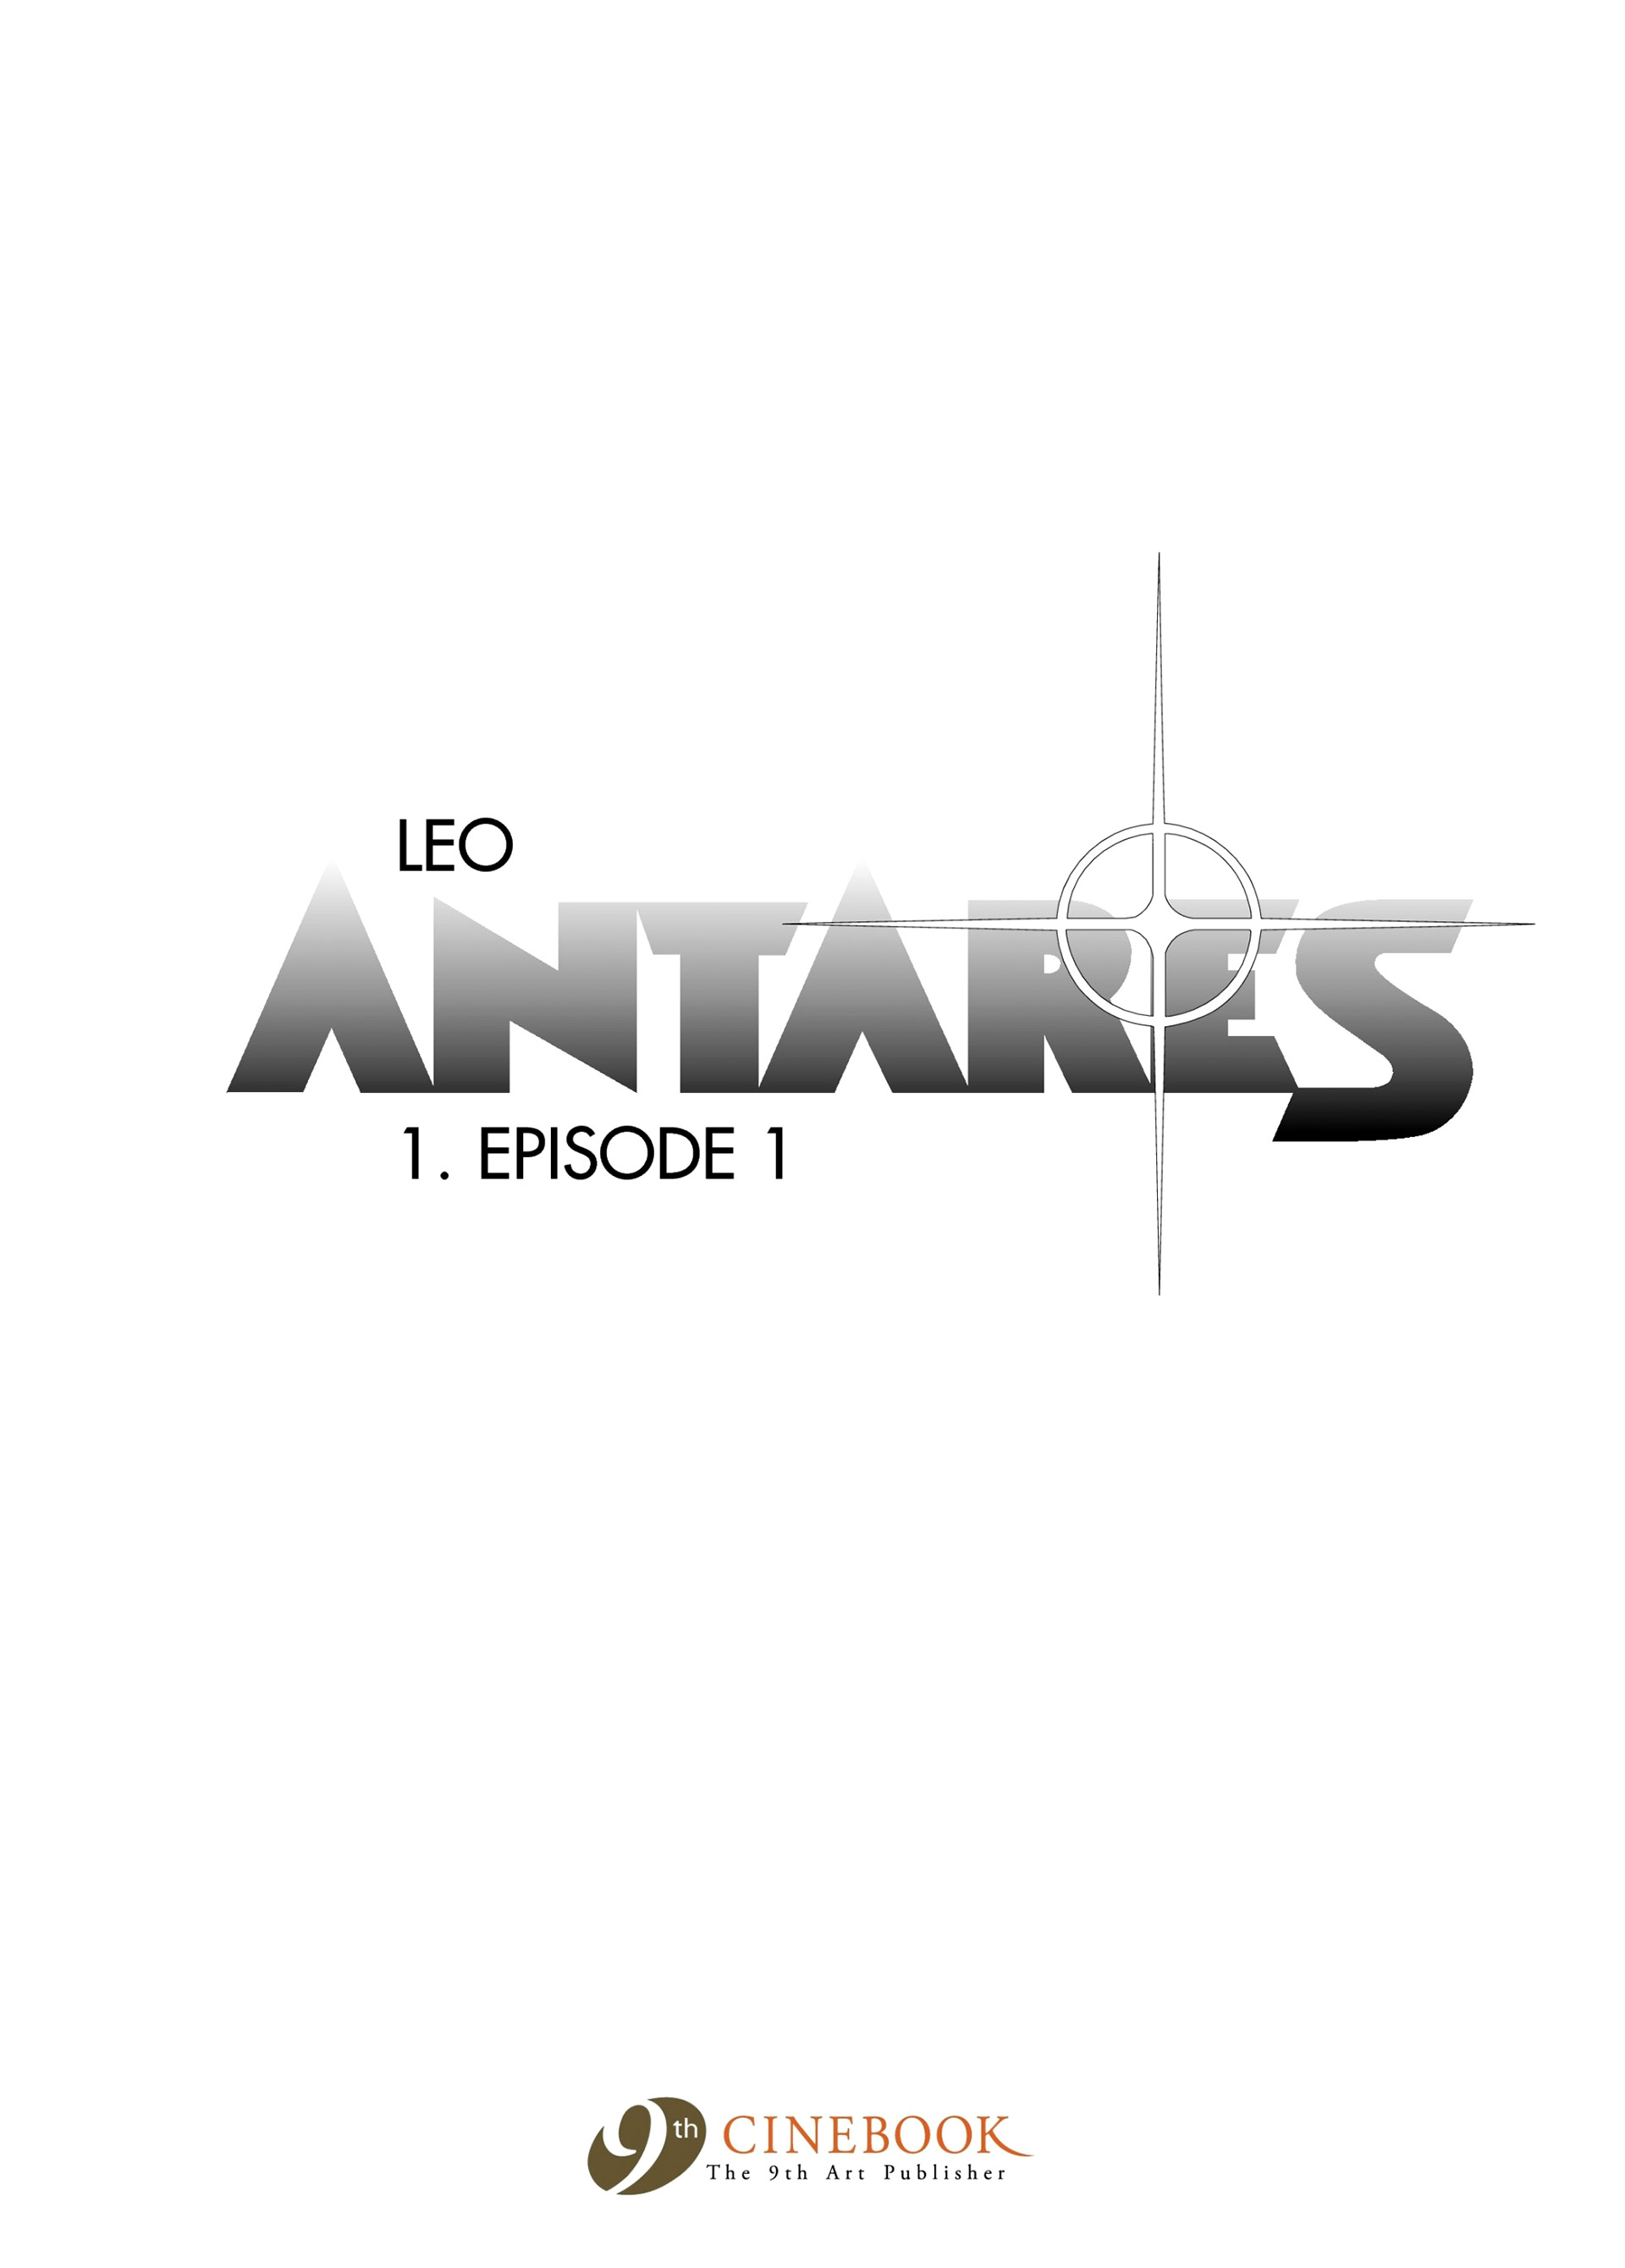 Read online Antares comic -  Issue #1 - 2